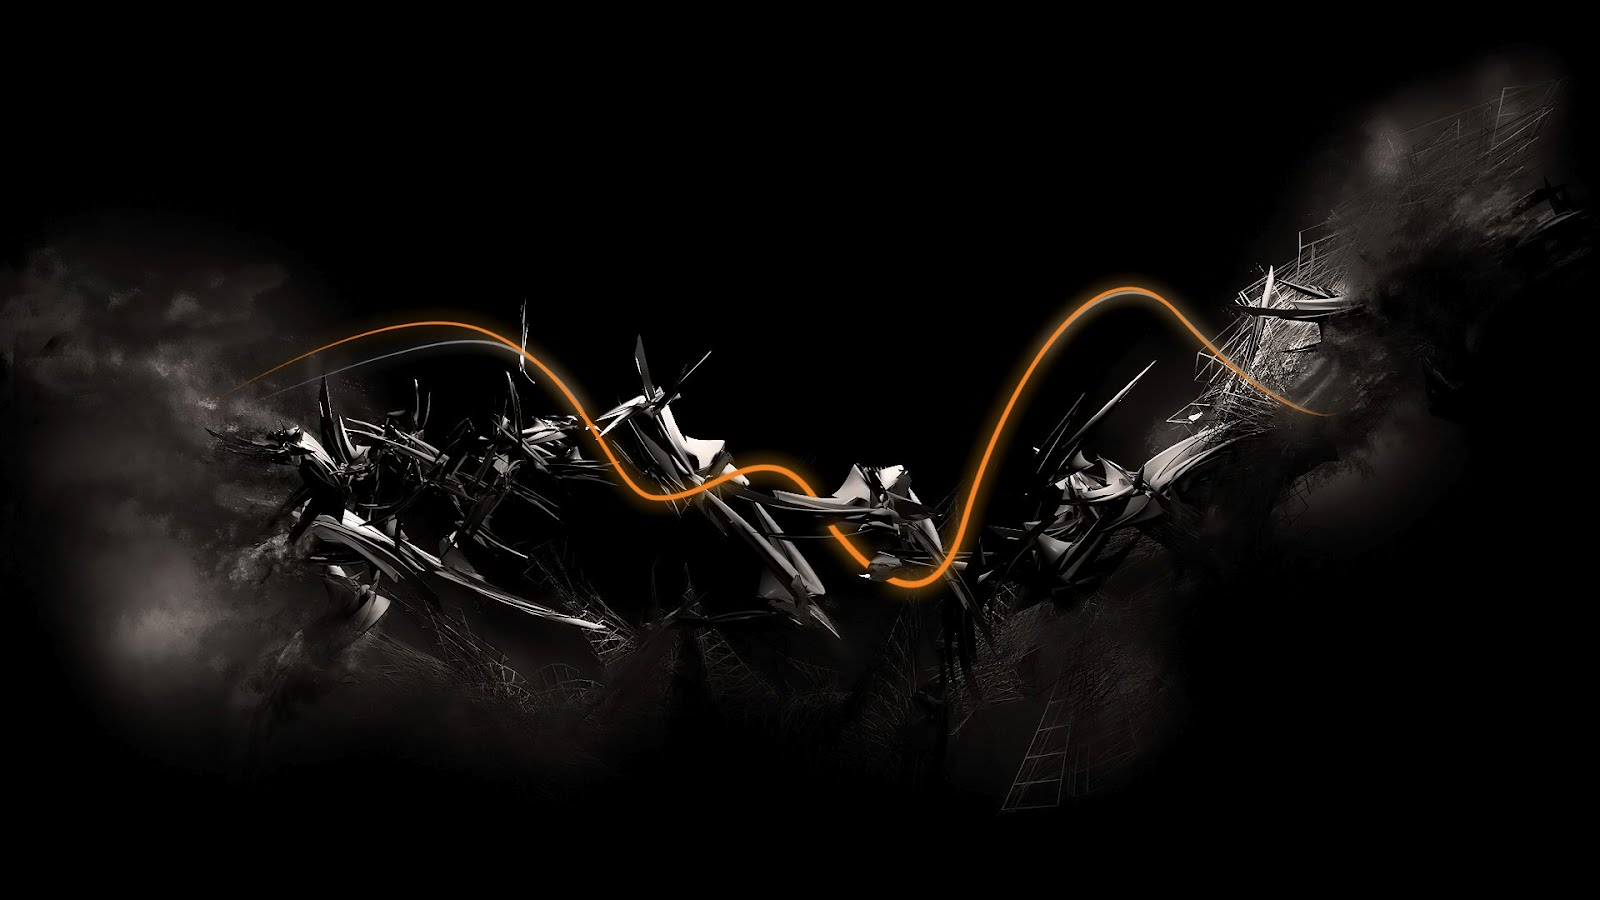 Abstract wallpapers hd transformers wallpapers - Black abstract background ...